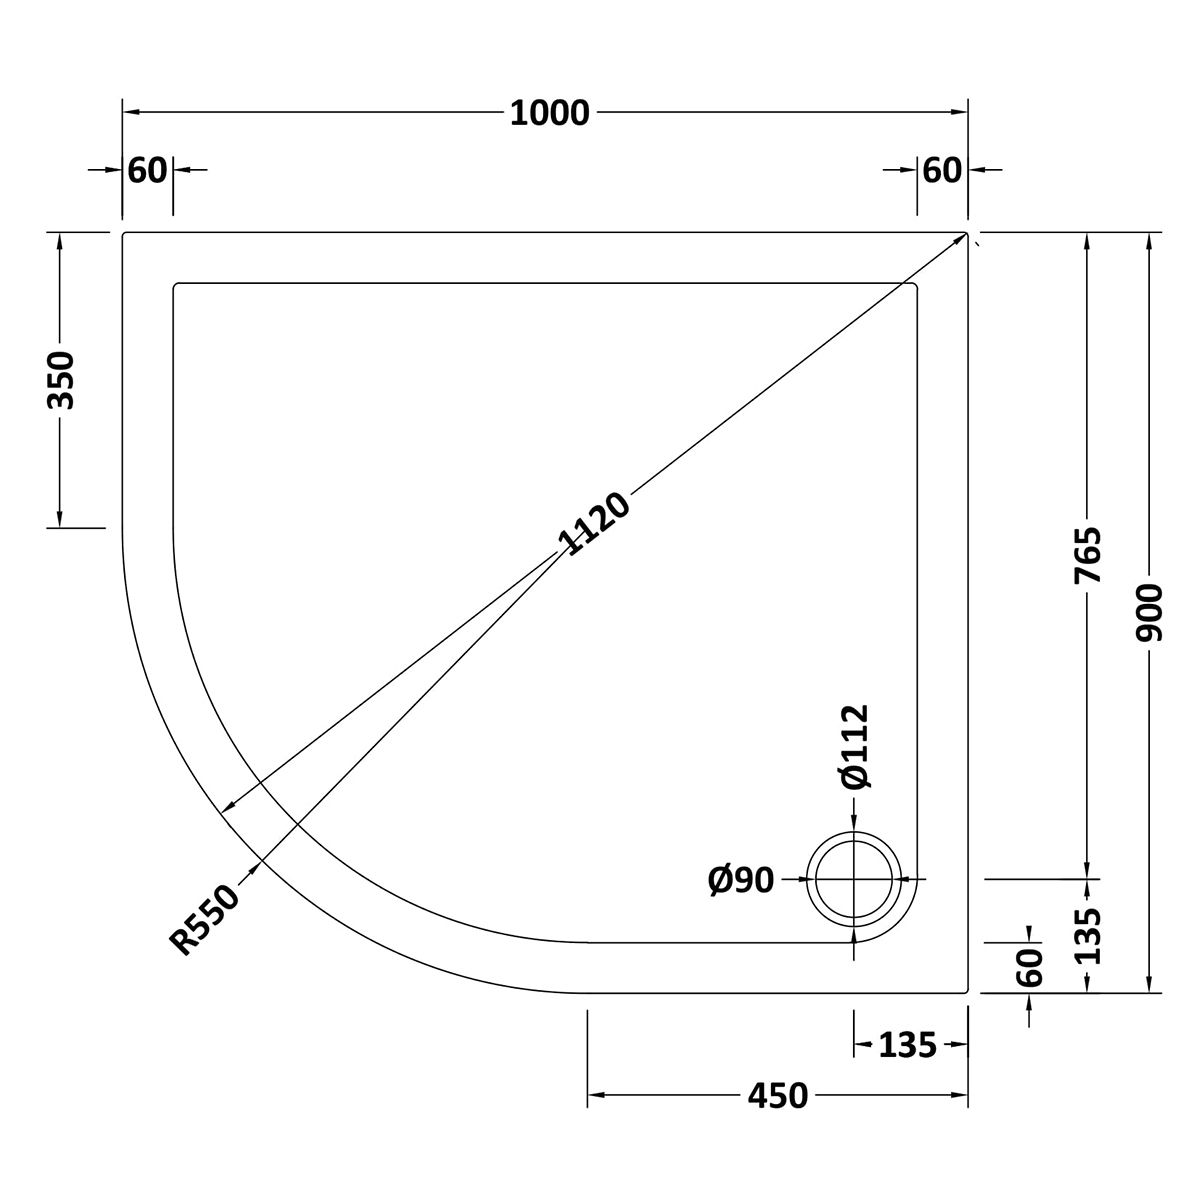 1000 x 900 Shower Tray Slate Grey Offset Quadrant Low Profile Left Hand by Pearlstone Line Drawing